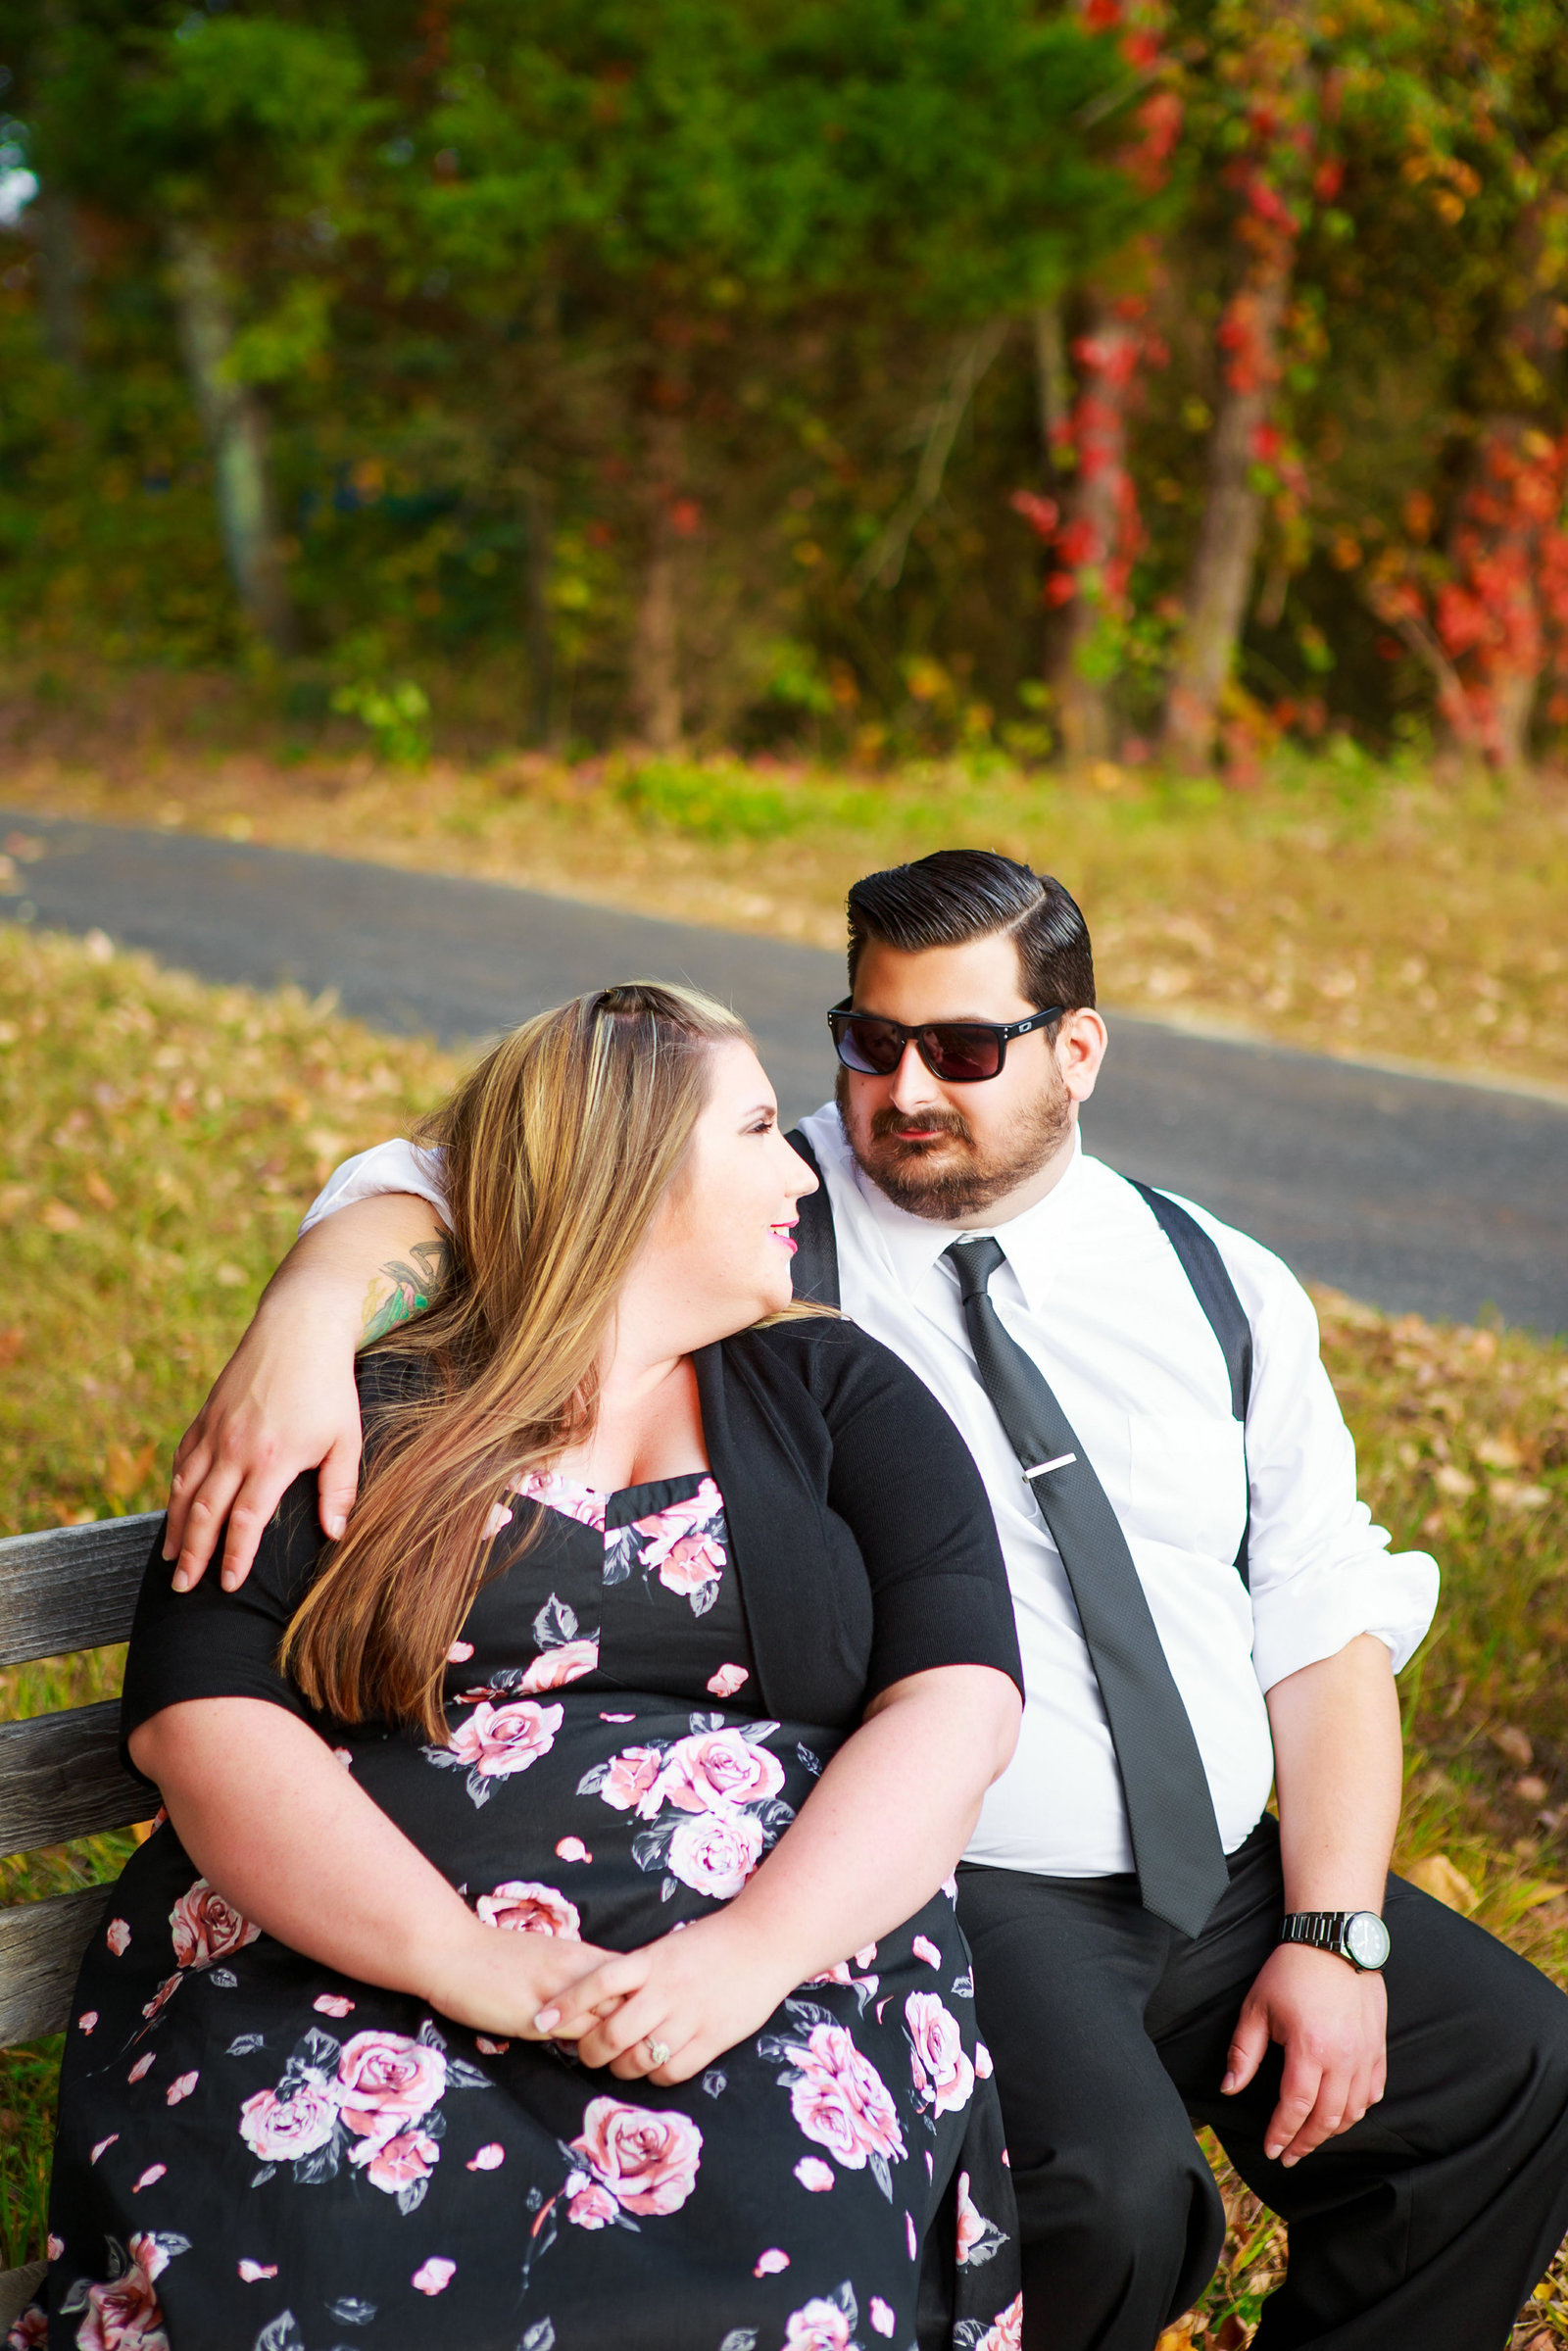 Retro_Pinup_Car_engagement_session_Nj069